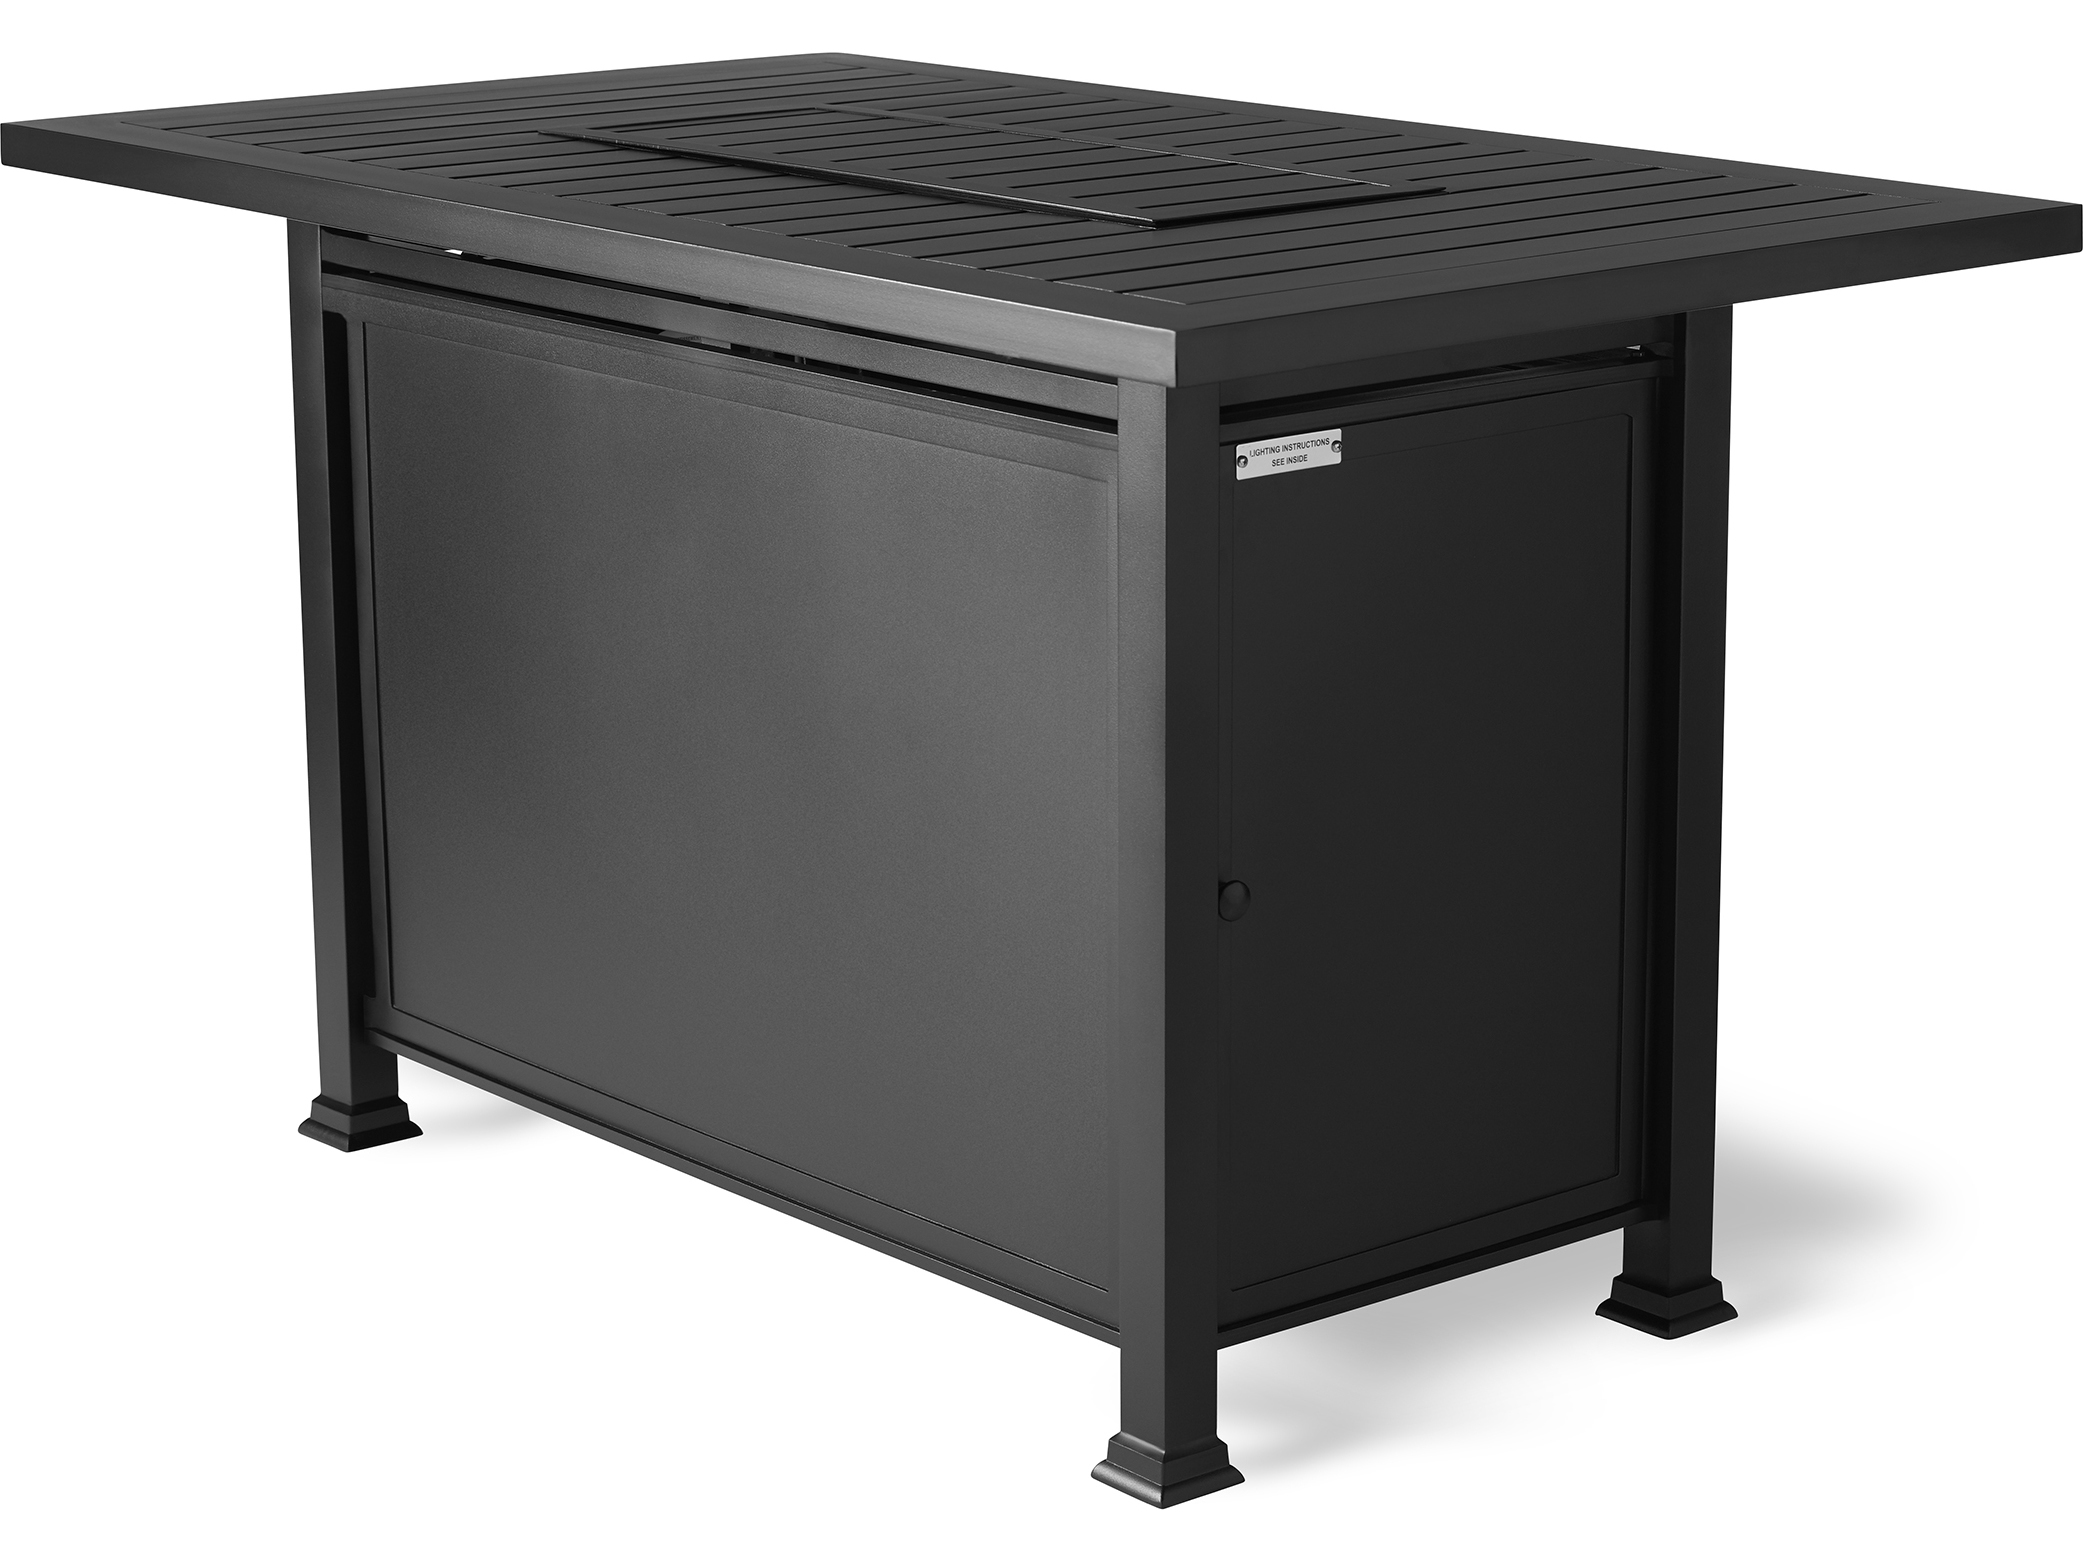 Picture of: Mallin Pasa Robles Aluminum 57 75 W X 36 D Rectangular N Slatted Top Counter Height Fire Pit Table Lf265 N260f